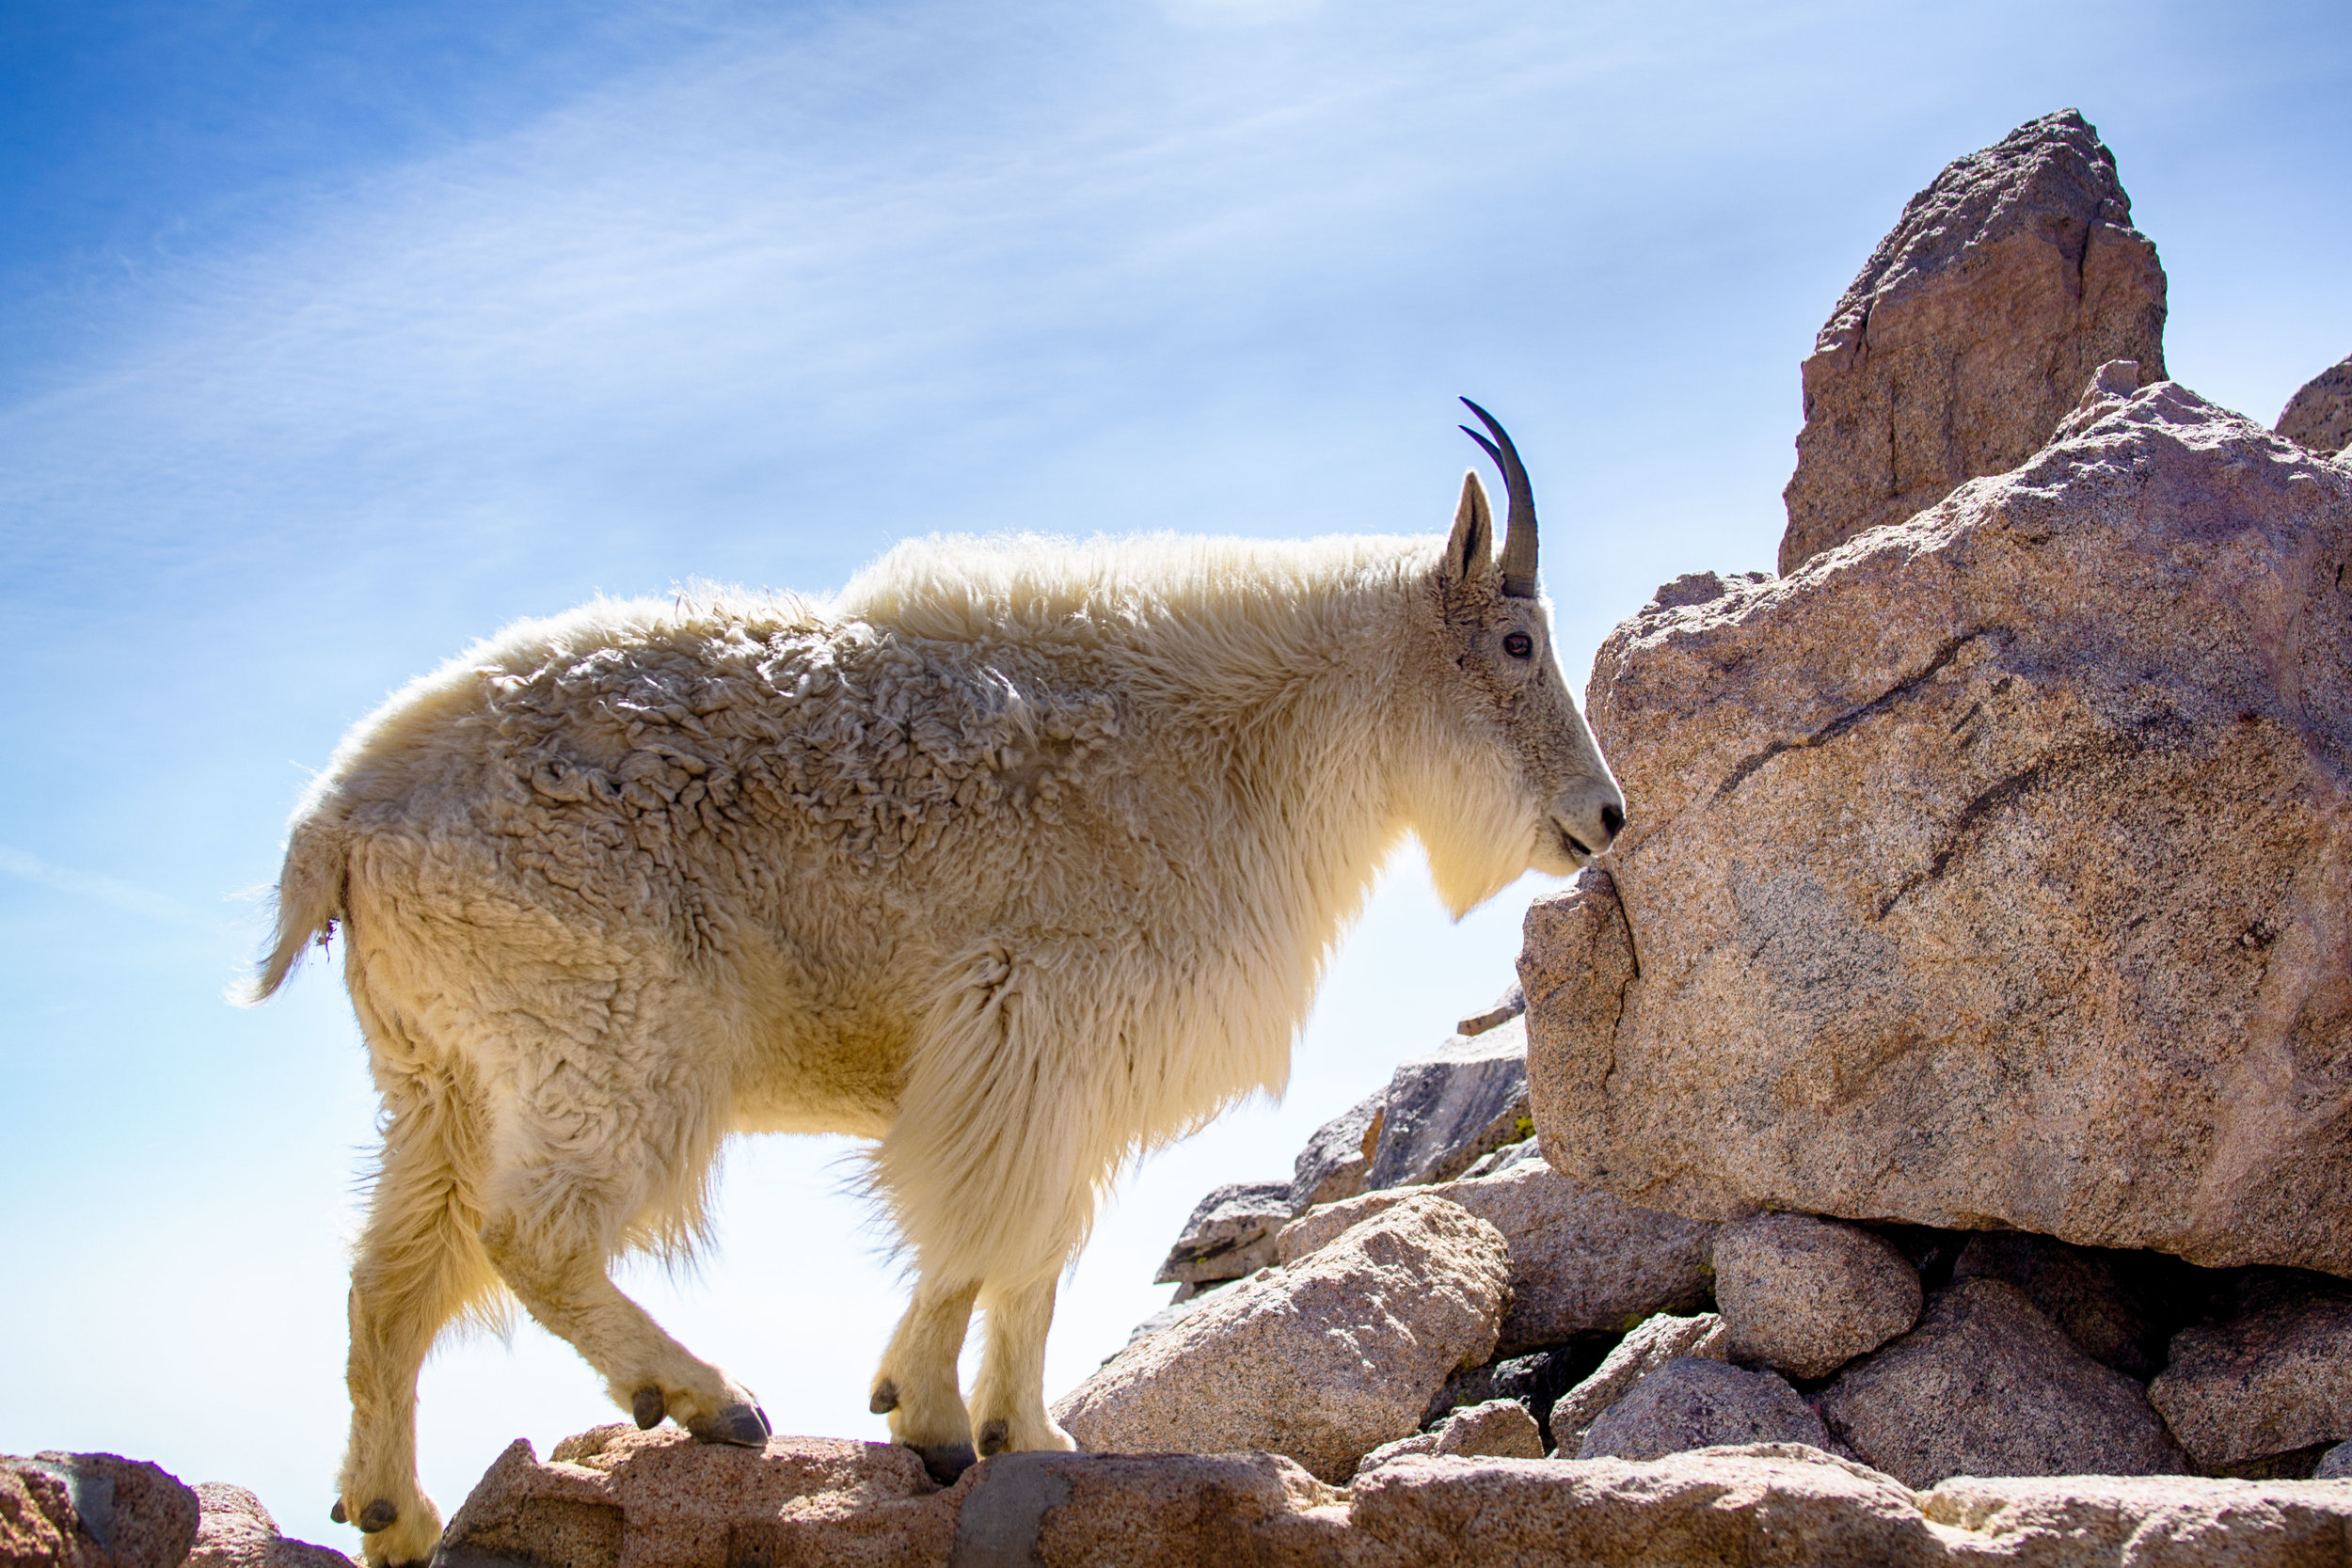 vickygood_travel_photography_colorado_mt.evans_goats8.jpg